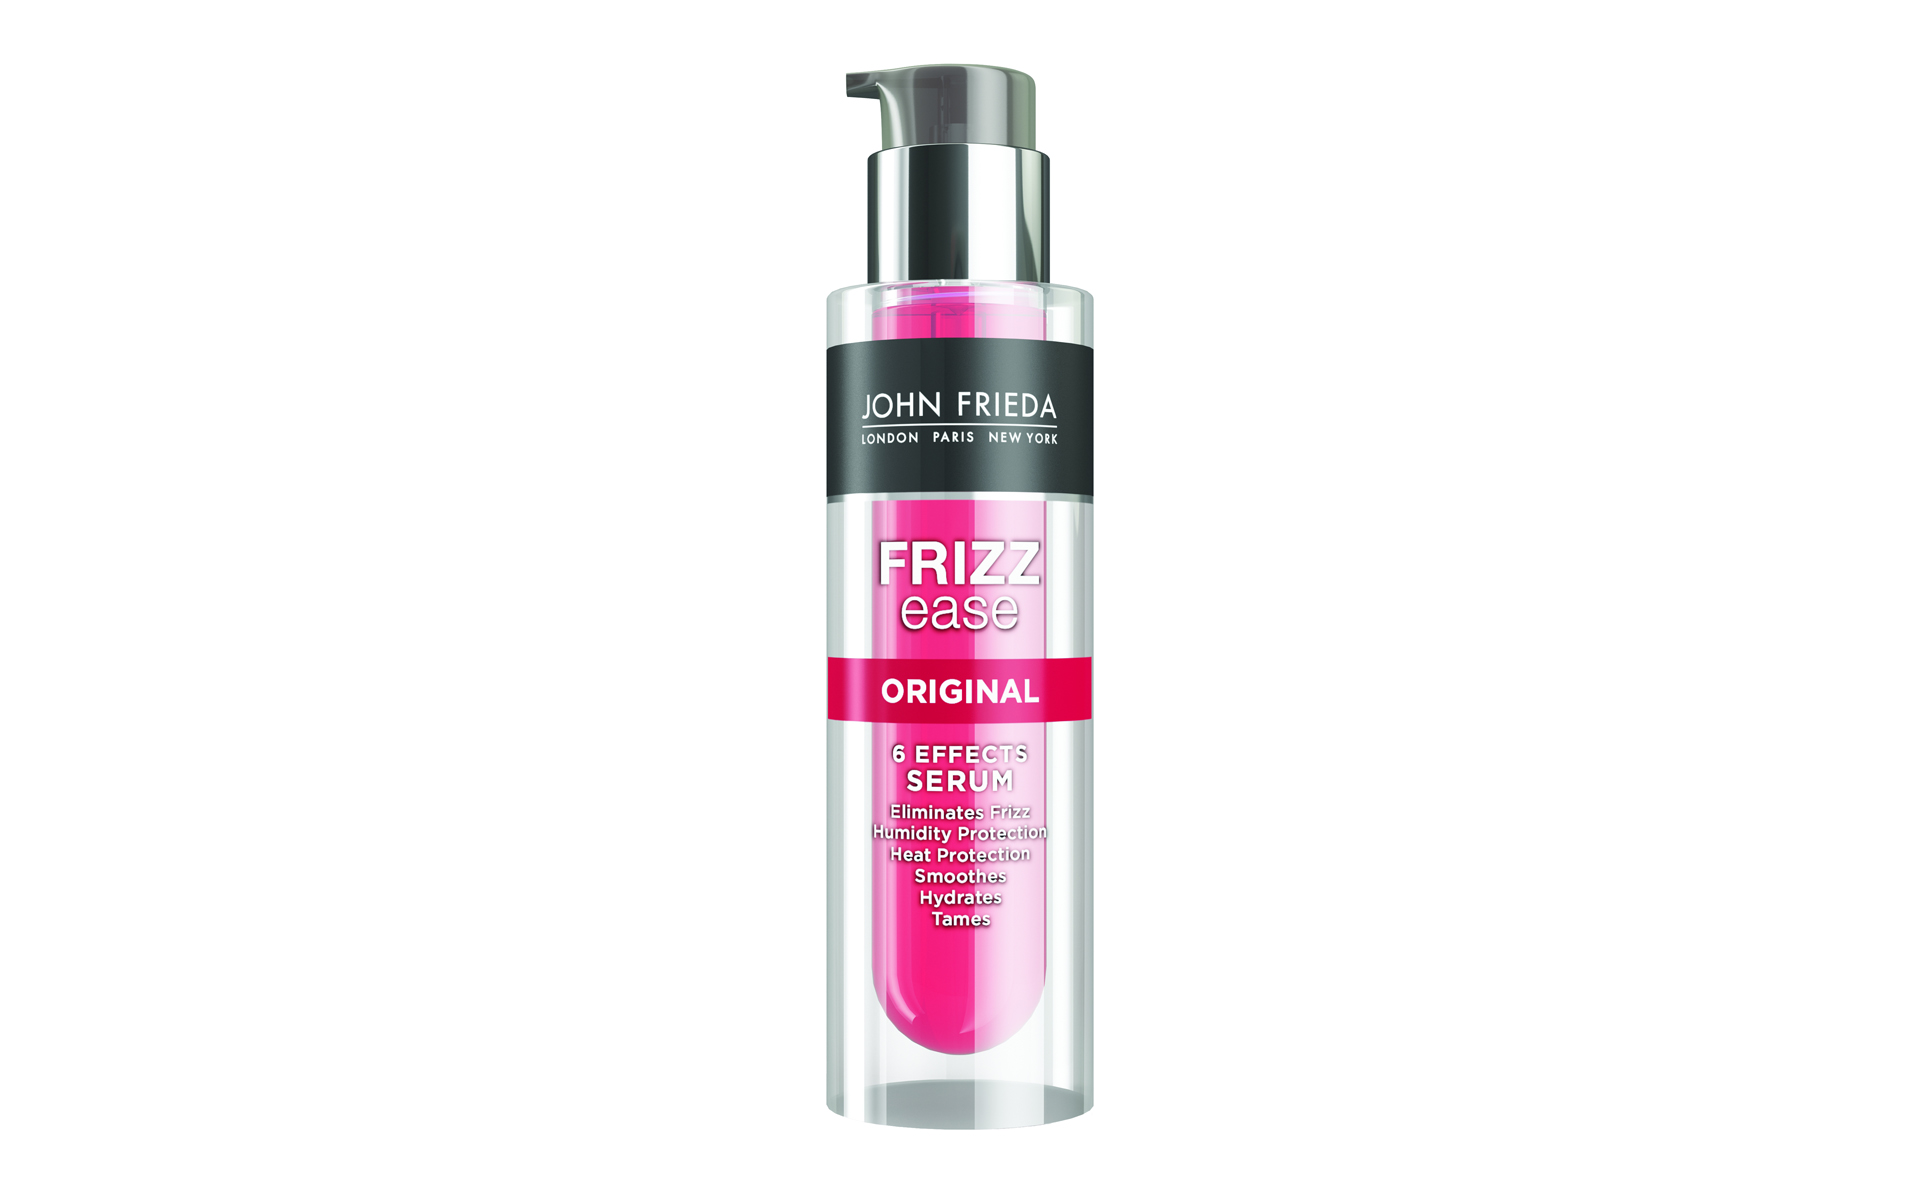 Frizz Ease Original Serum, £6.99, Superdrug (Frizz Ease/PA)